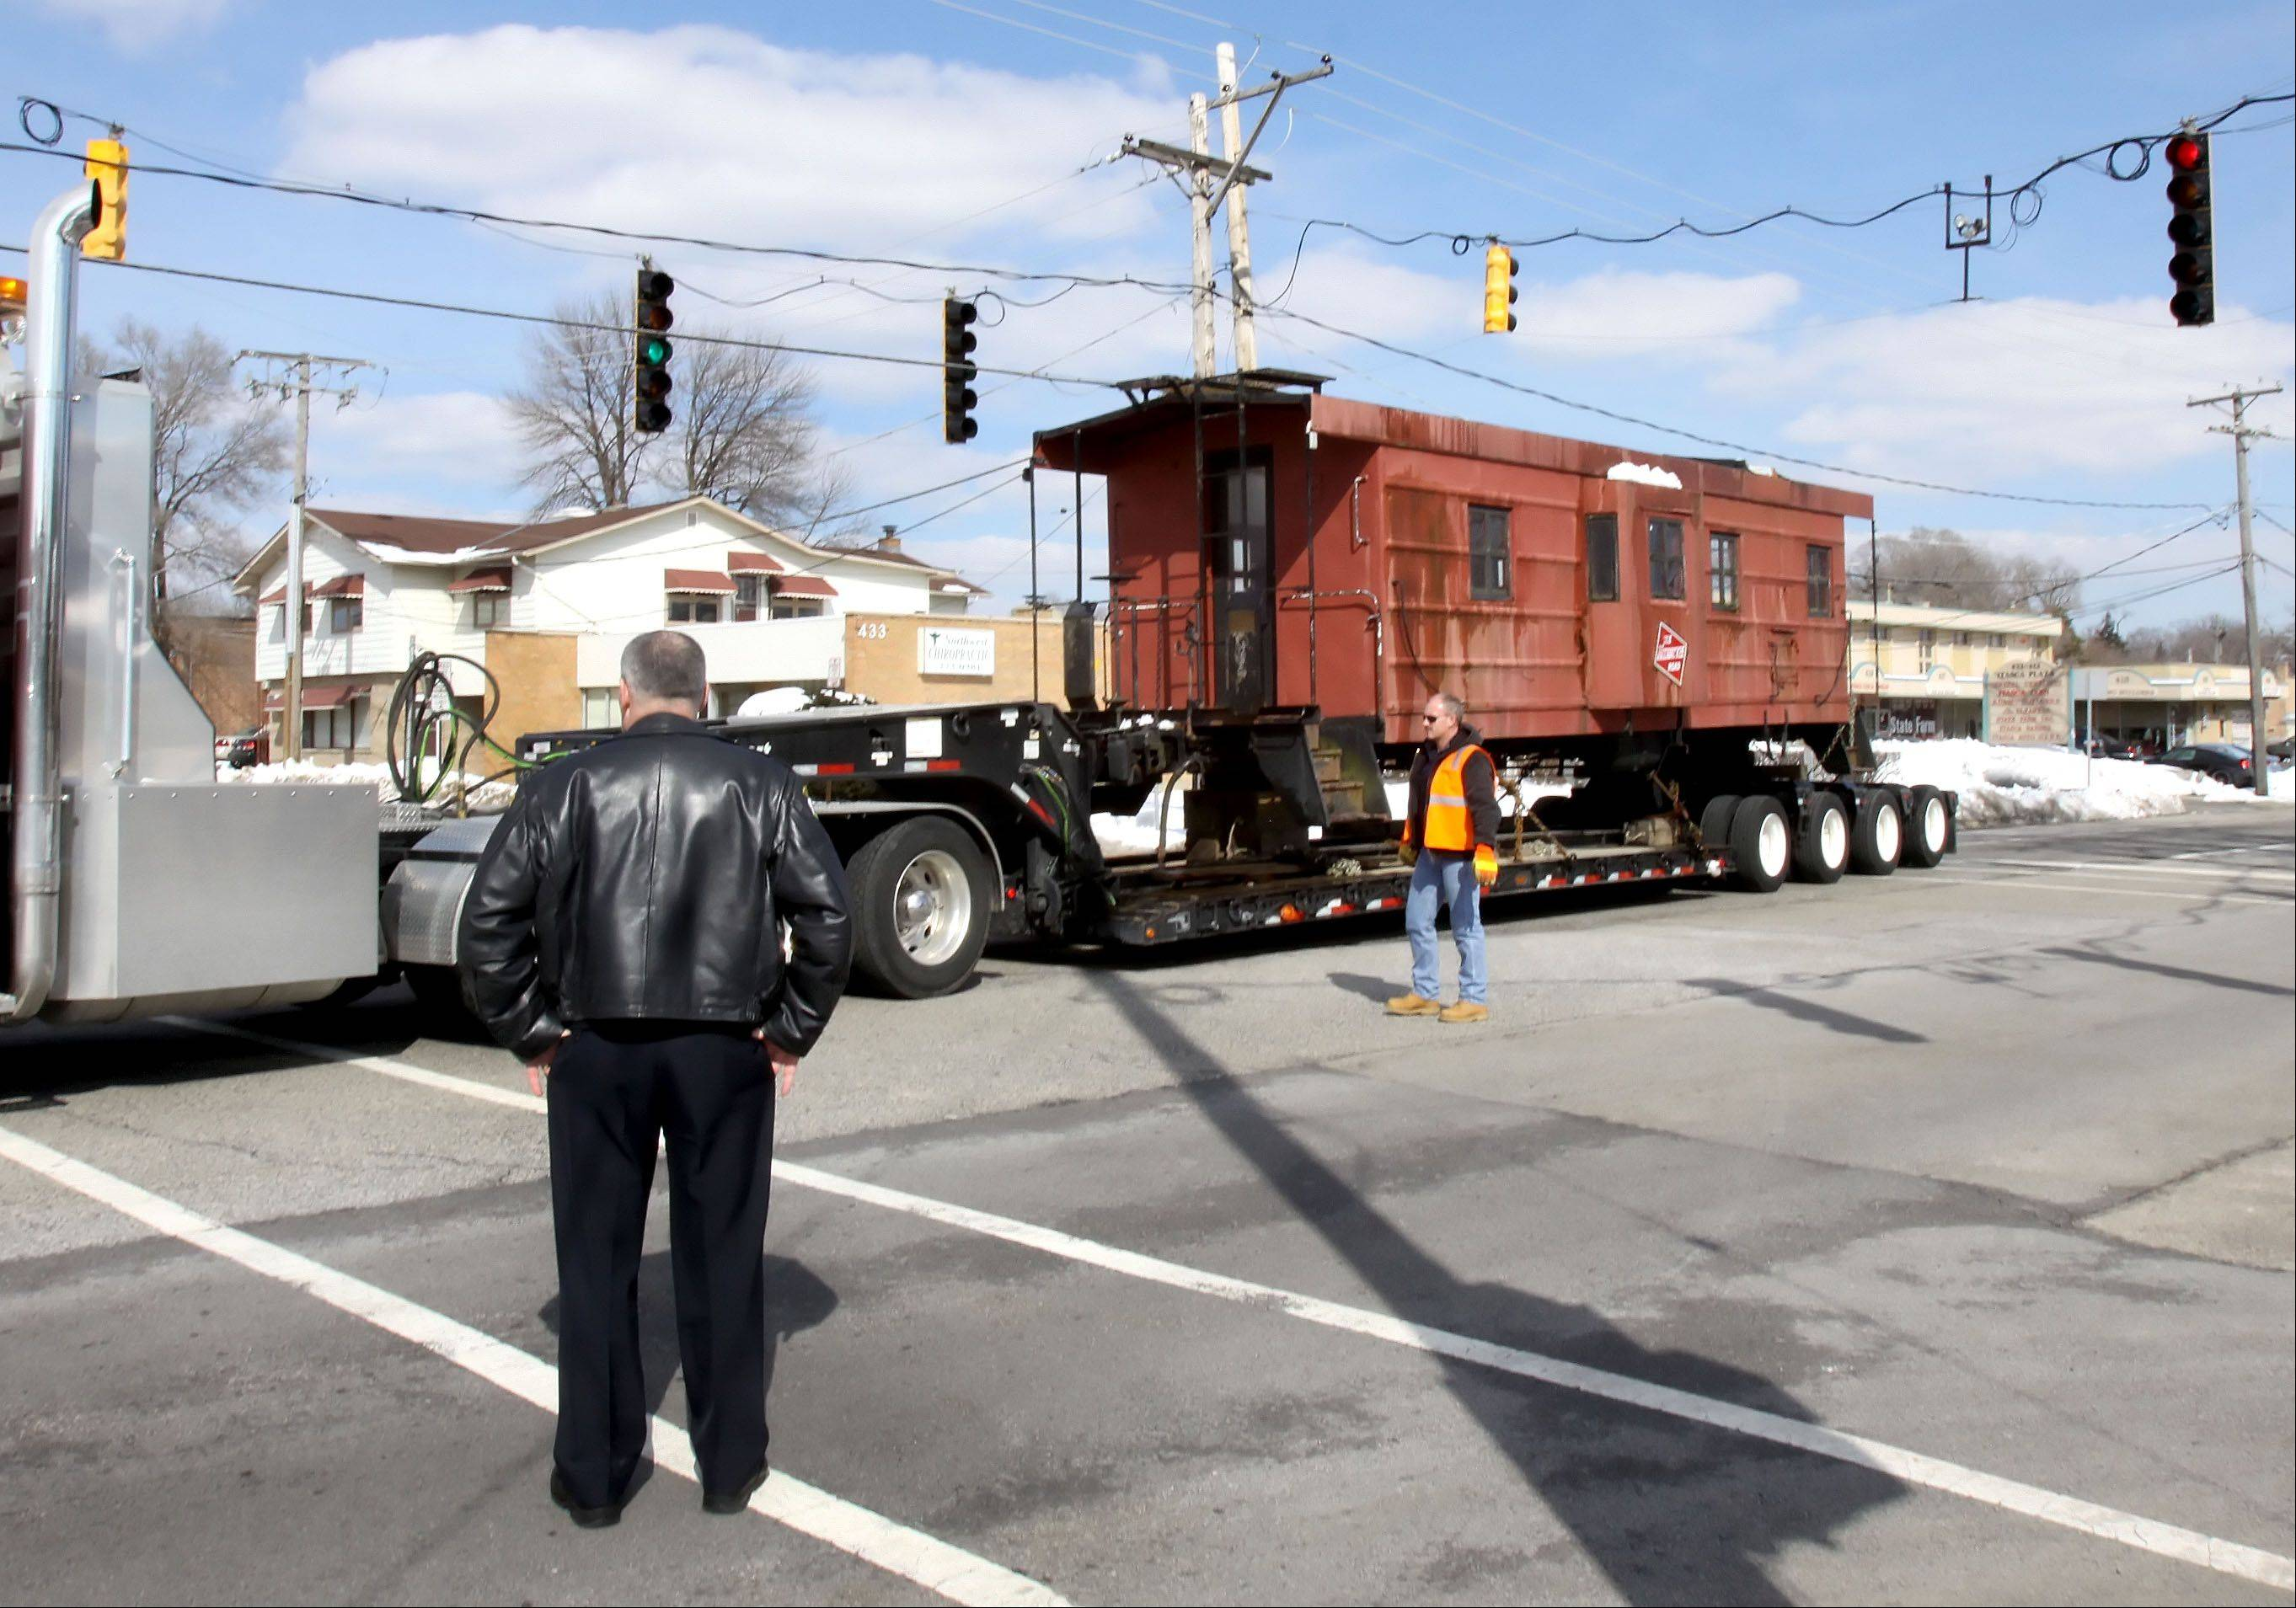 A caboose is driven through the intersection of Rowling Road and Catalpa Avenue on Thursday in Itasca. It was moved from its home on Bloomingdale Road to its new home at the Itasca Historical Depot Museum.